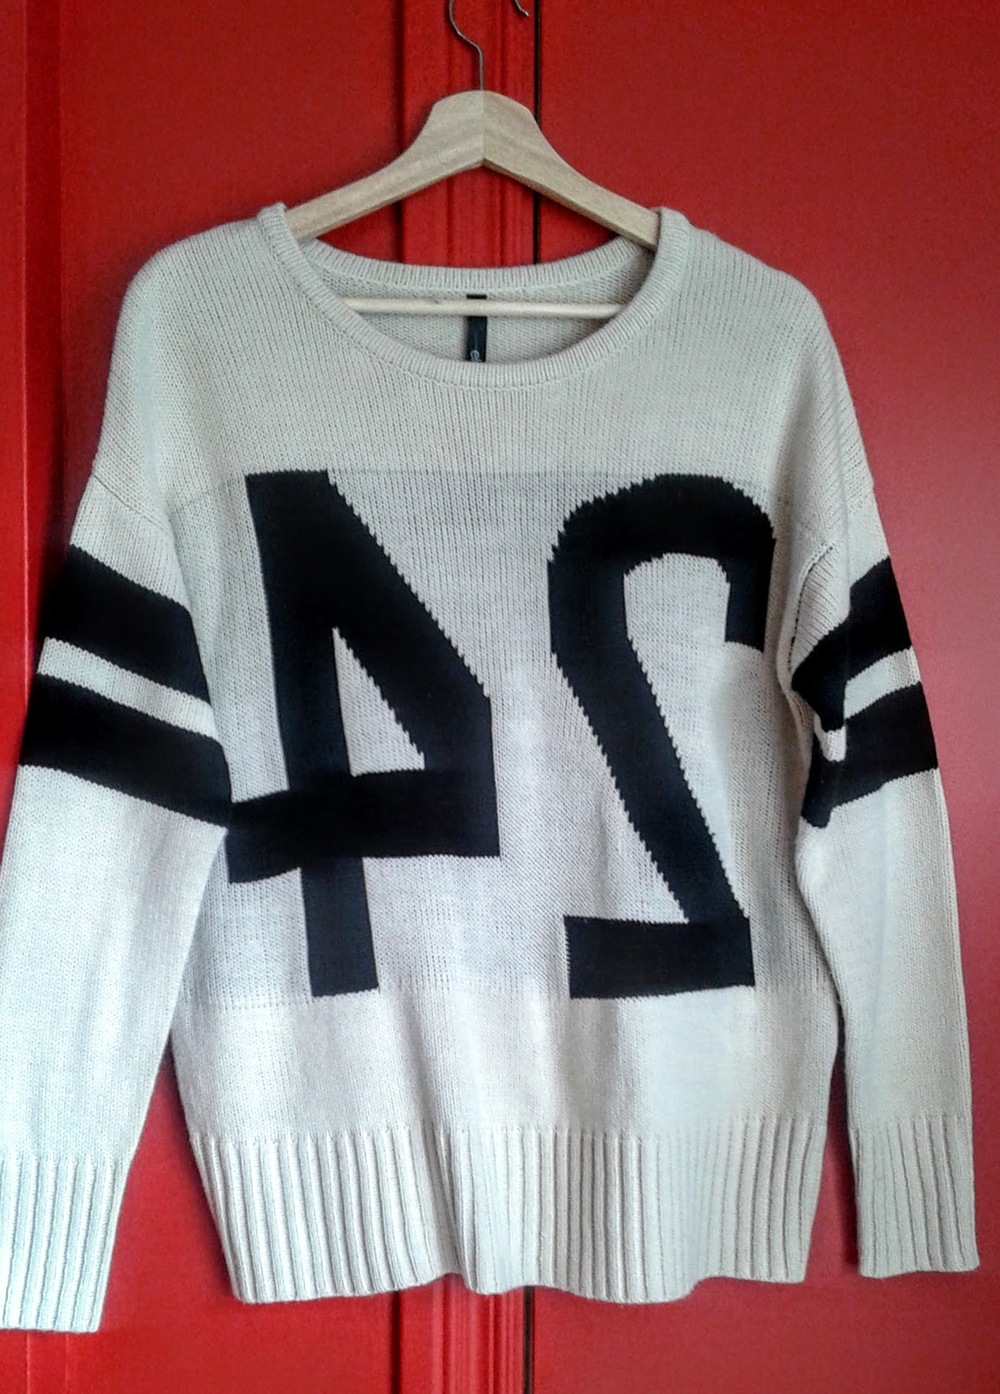 Backwards sweater; size M, $26